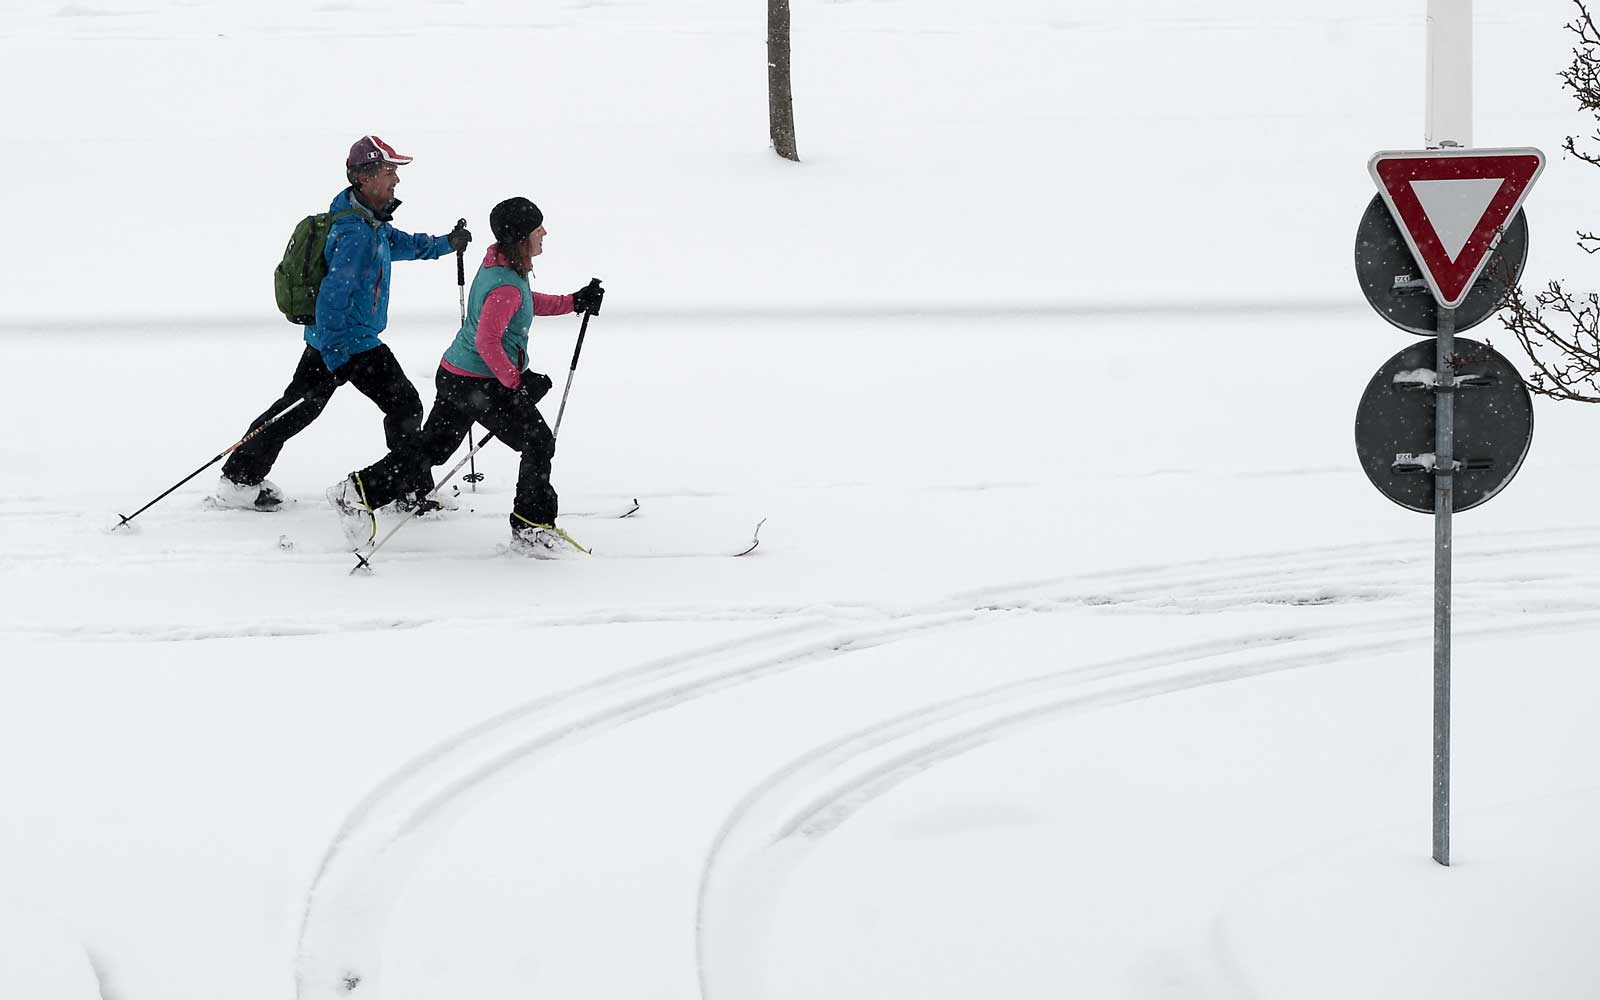 A couple ski on a snow covered street of Biarritz, southwestern France, on February 28, 2018, after heavy snow fall.